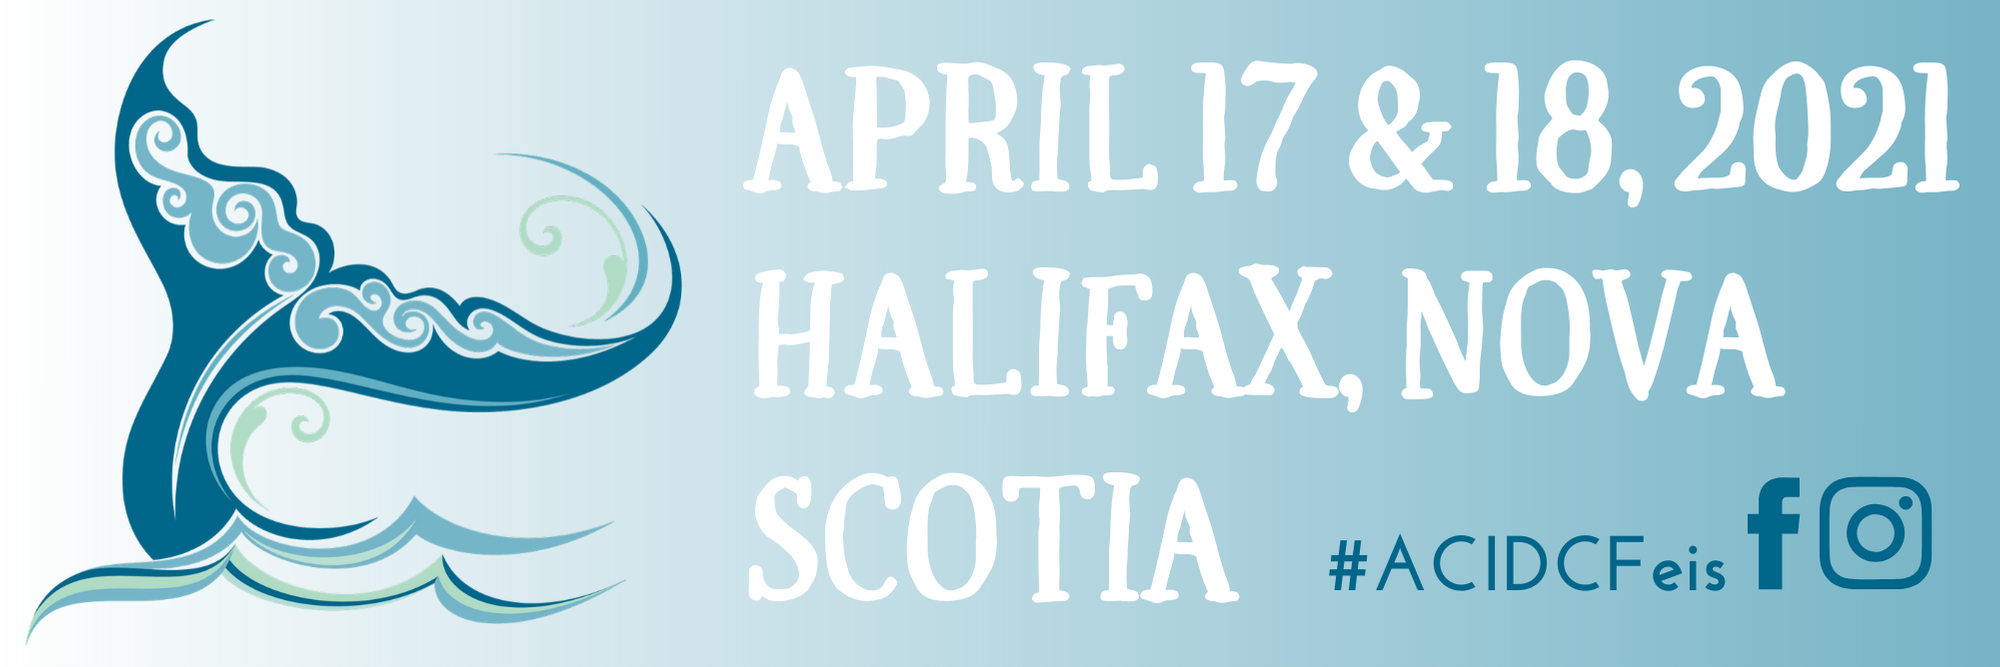 Feis date is April 17 and 18, 2021 in Halifax, Nova Scotia.